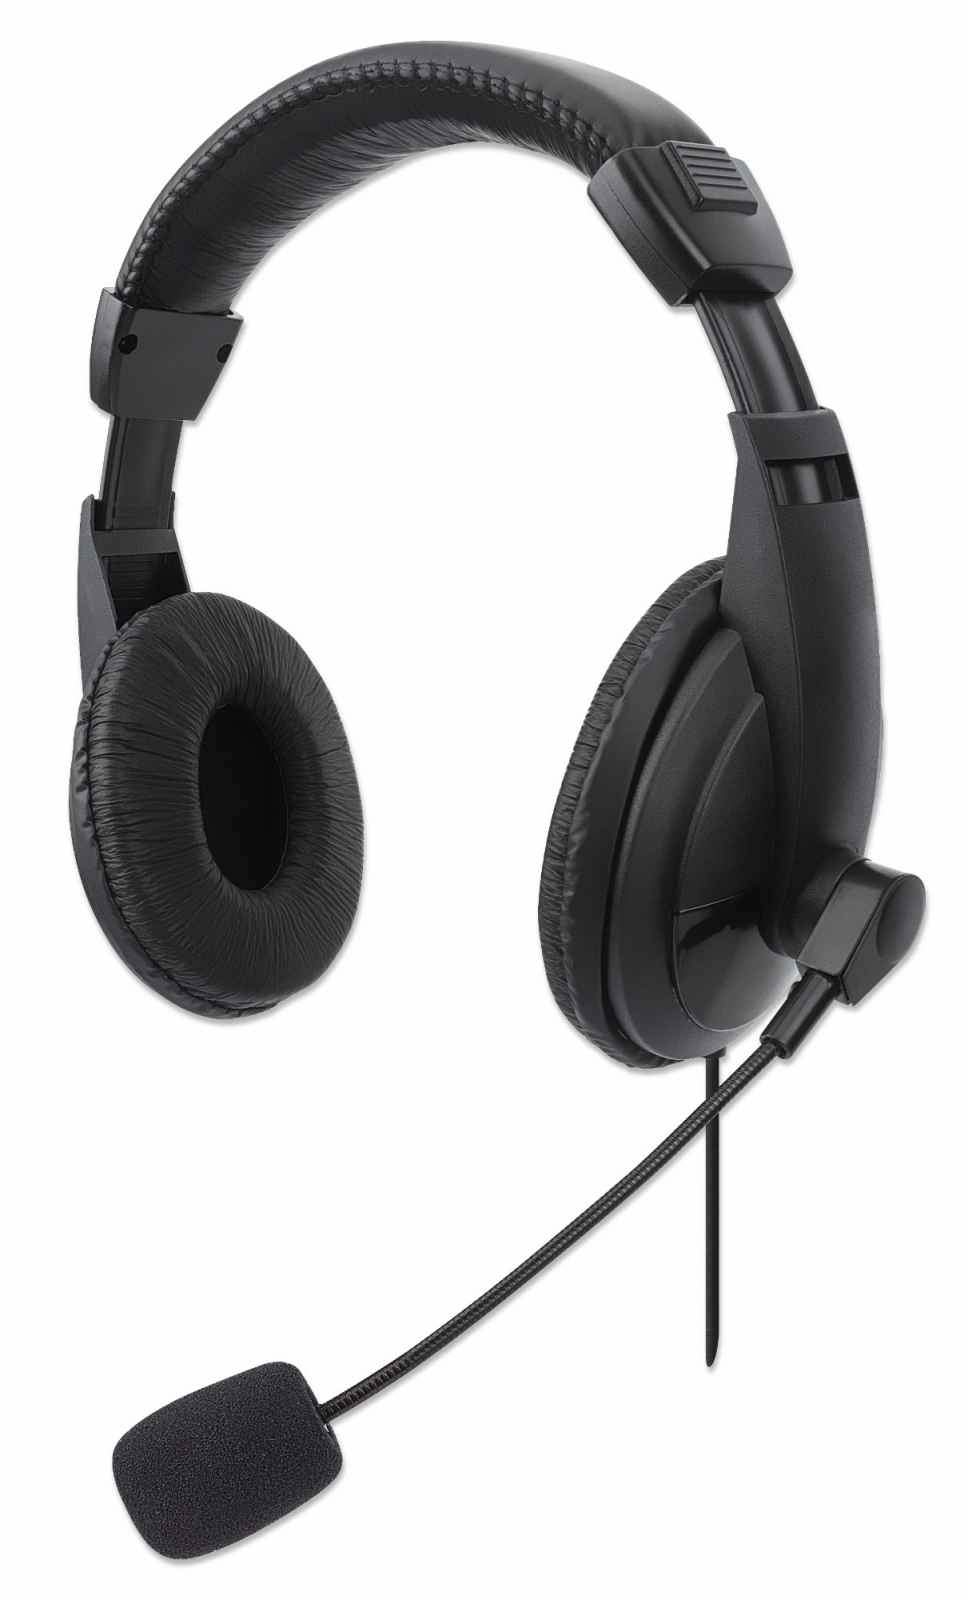 Manhattan Stereo USB Headset, Lightweight Over-Ear design, Adjustable microphone, Integrated controls, USB-A plug, Black, Polybag